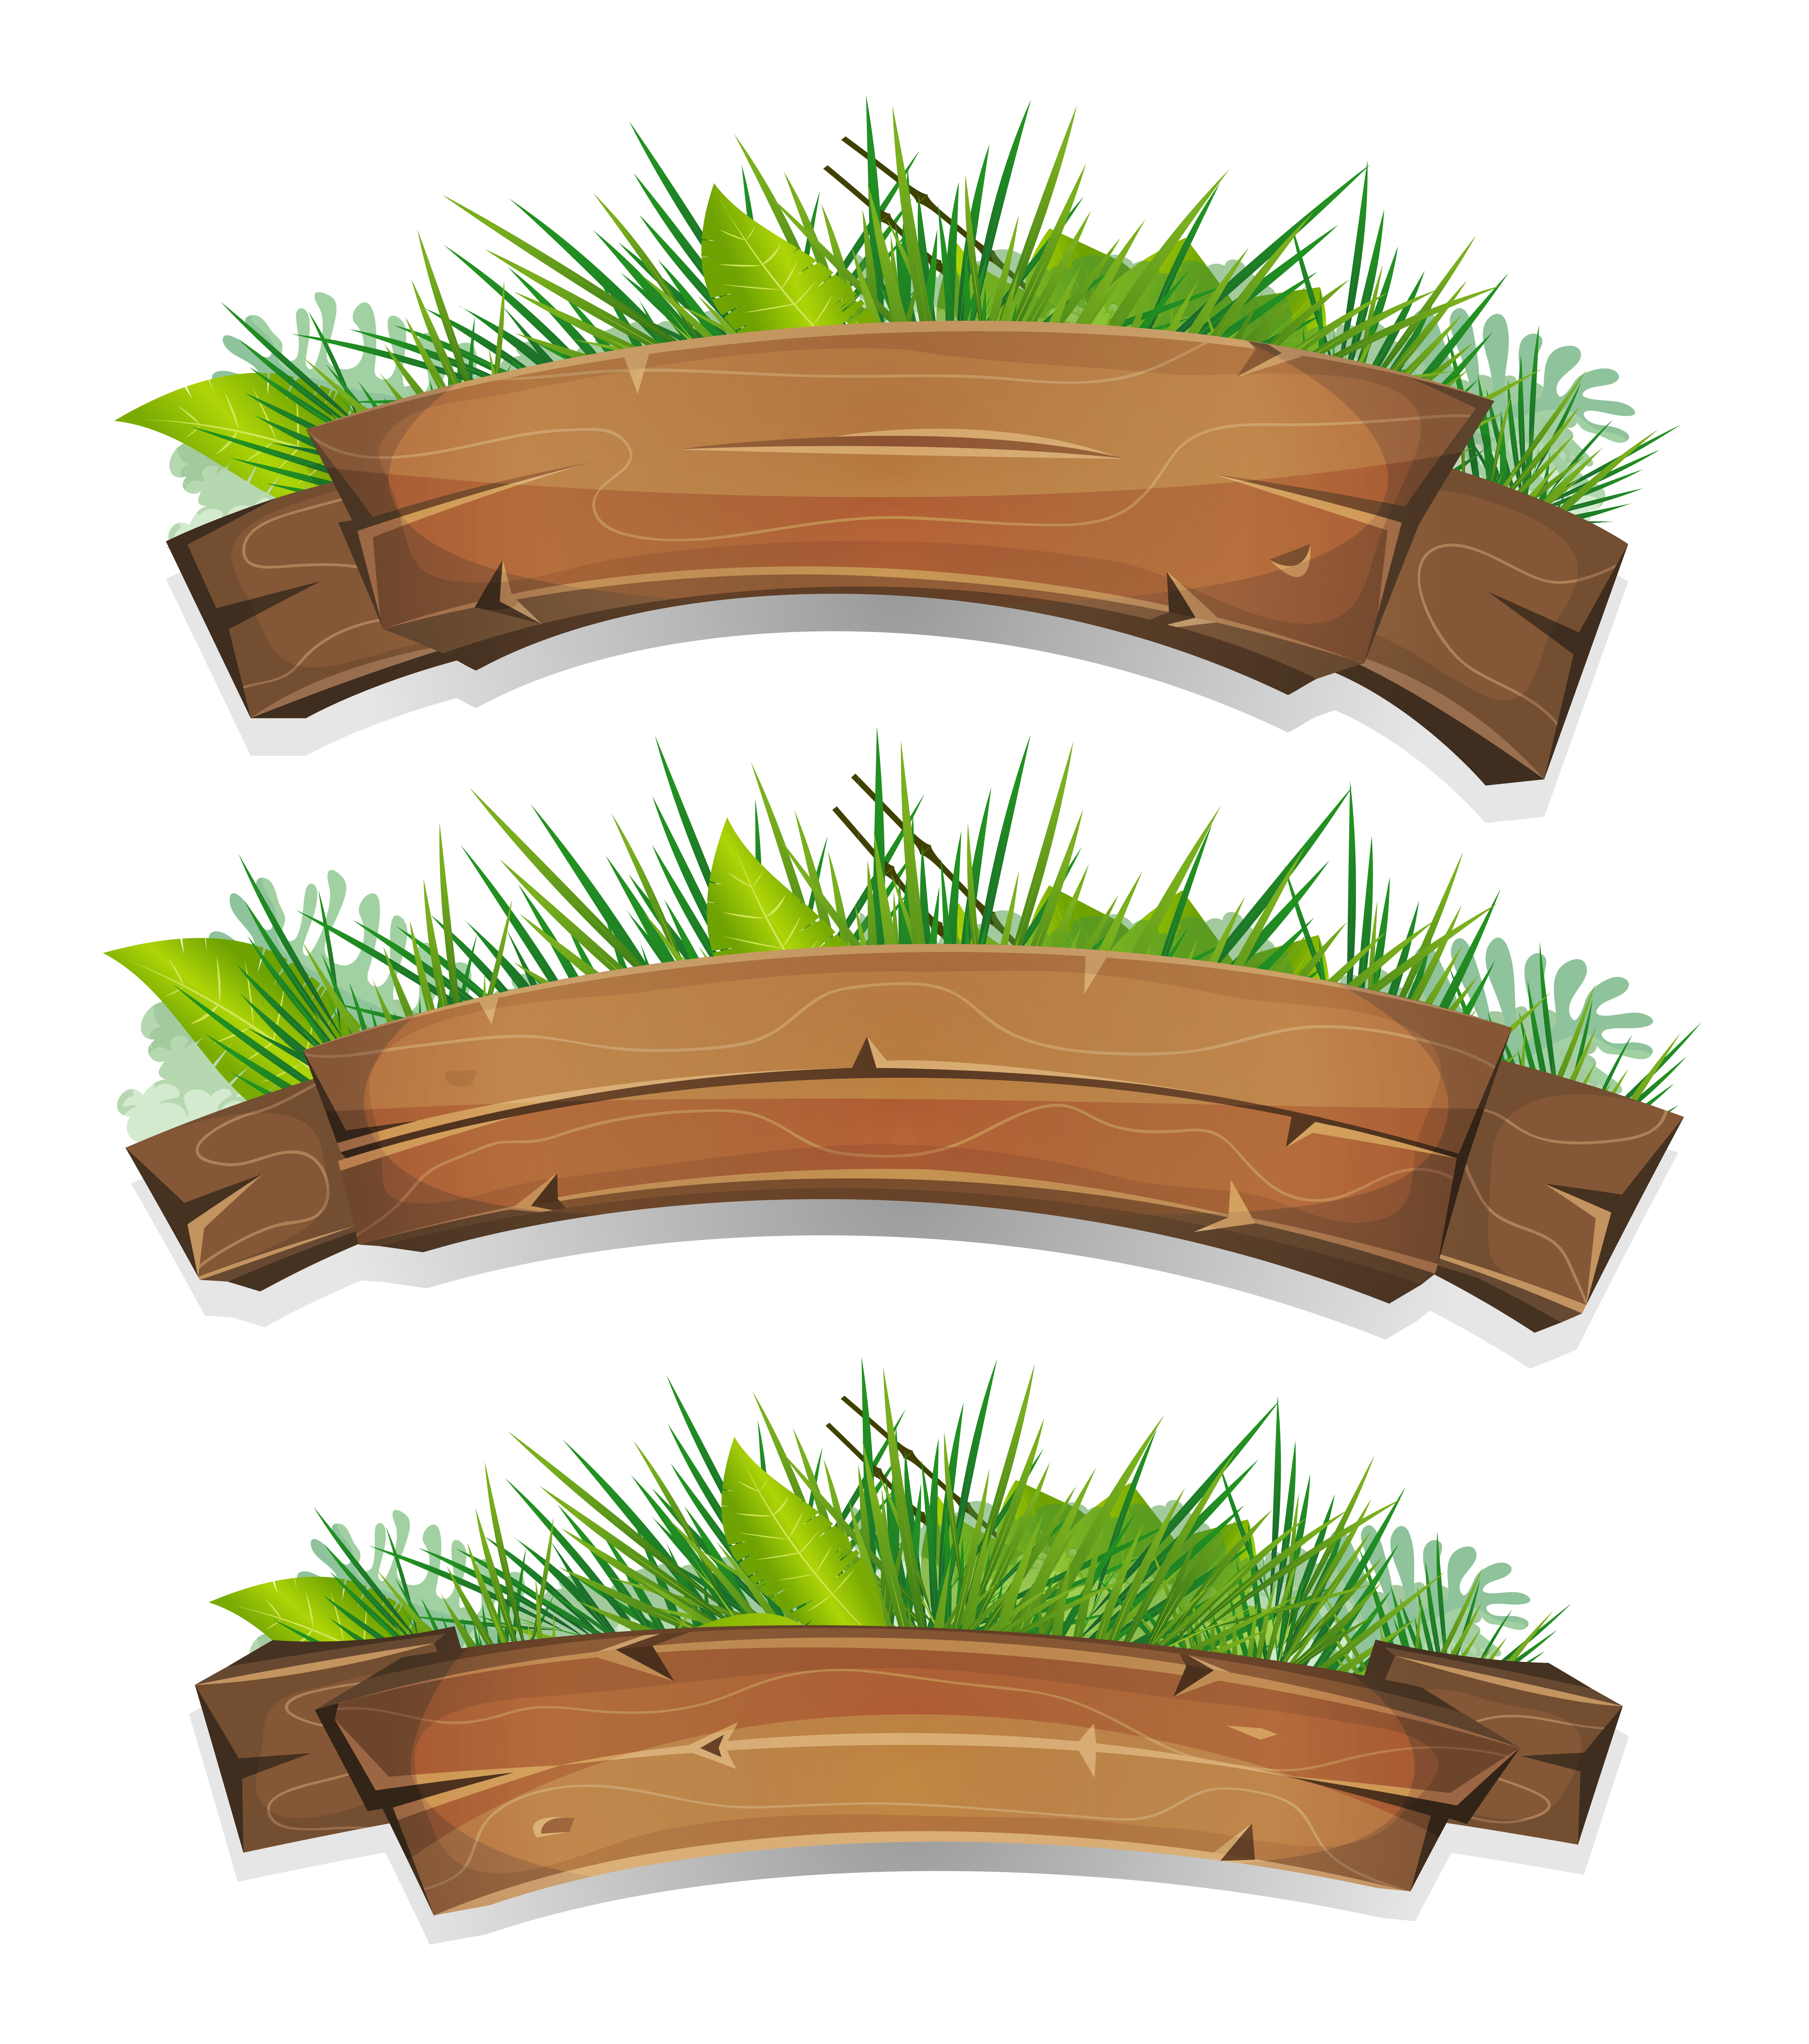 Comic Wood Banners With Plants Leaves - Download Free ...